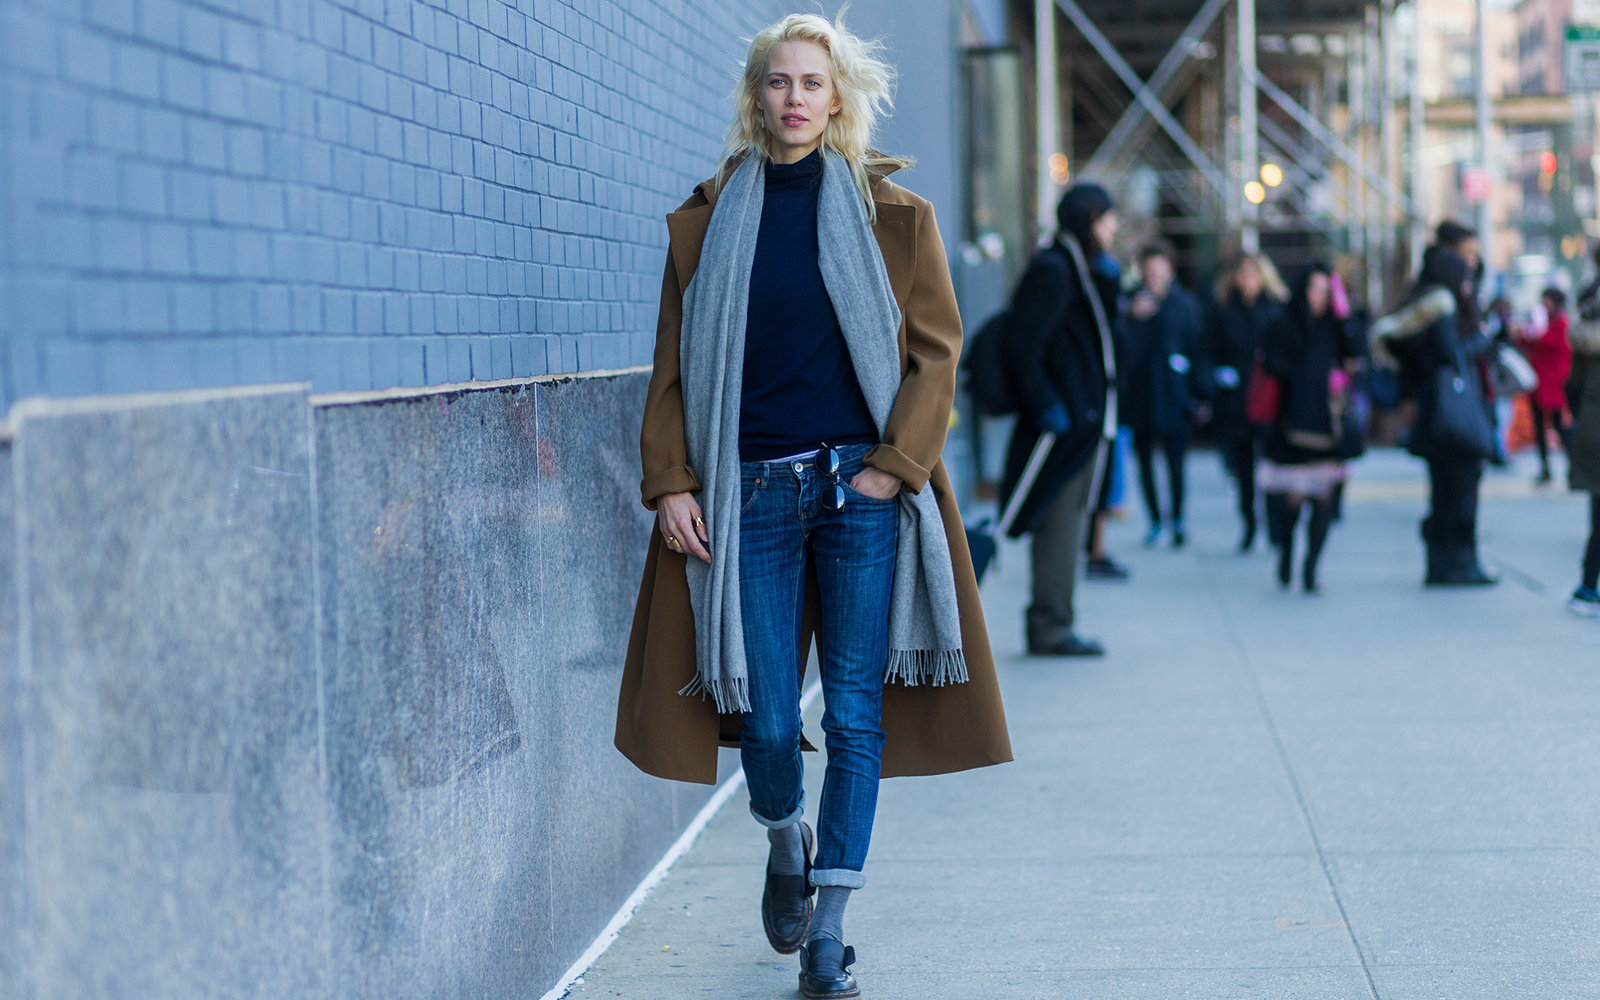 NEW YORK, NY - FEBRUARY 13:  French model Aymeline Valade wearing dark blue denim jeans, a grey scarf and a brown coat seen outside Lacoste during New York Fashion Week: Women's Fall/Winter 2016 on February 13, 2016 in New York City.  (Photo by Christian